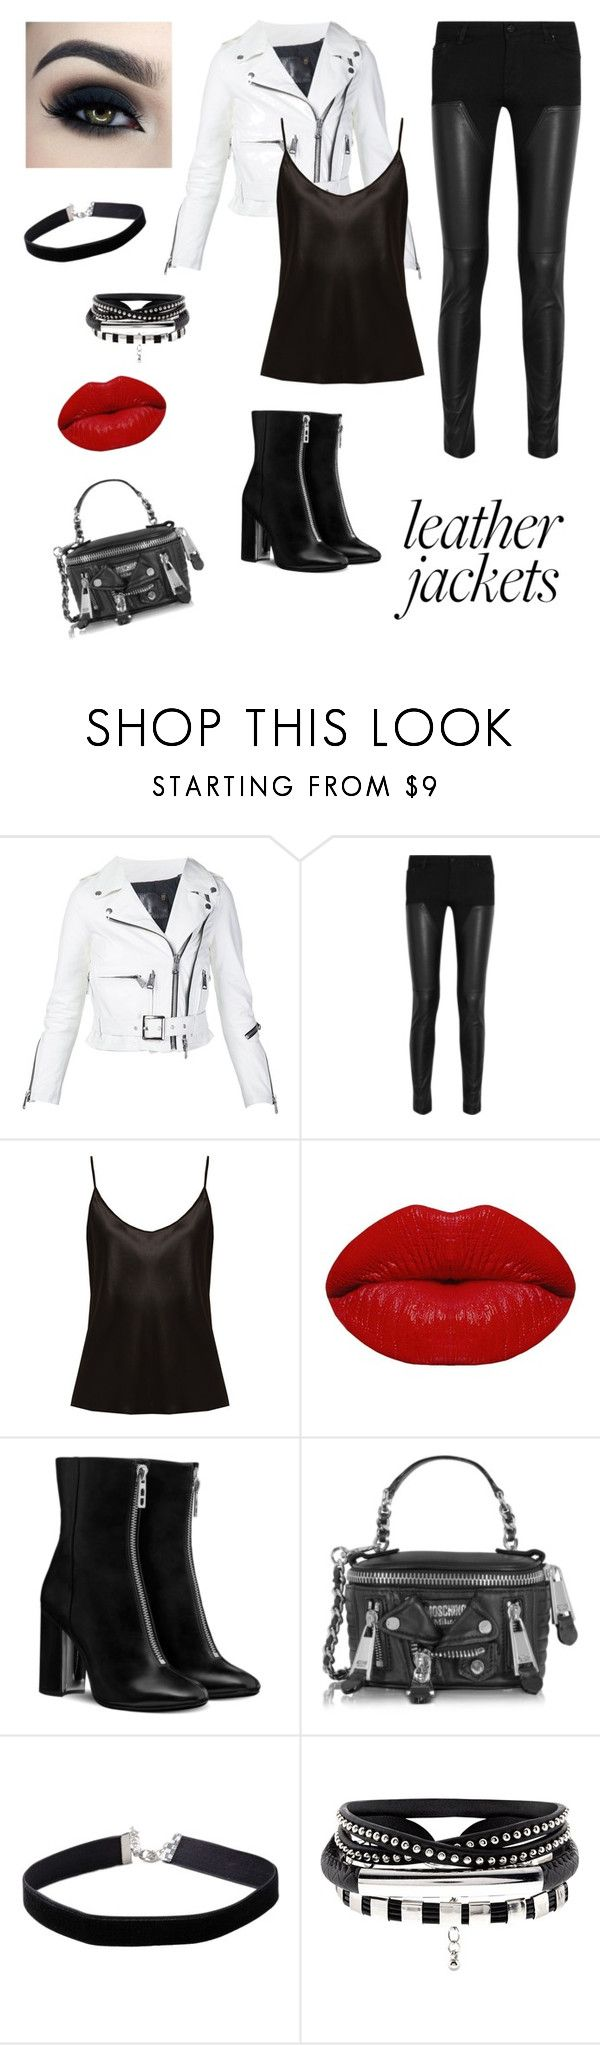 """""""#leather jacket"""" by judith-stephanie-hernandez ❤ liked on Polyvore featuring R13, Givenchy, La Perla, Winky Lux, Moschino, Miss Selfridge and Too Faced Cosmetics"""